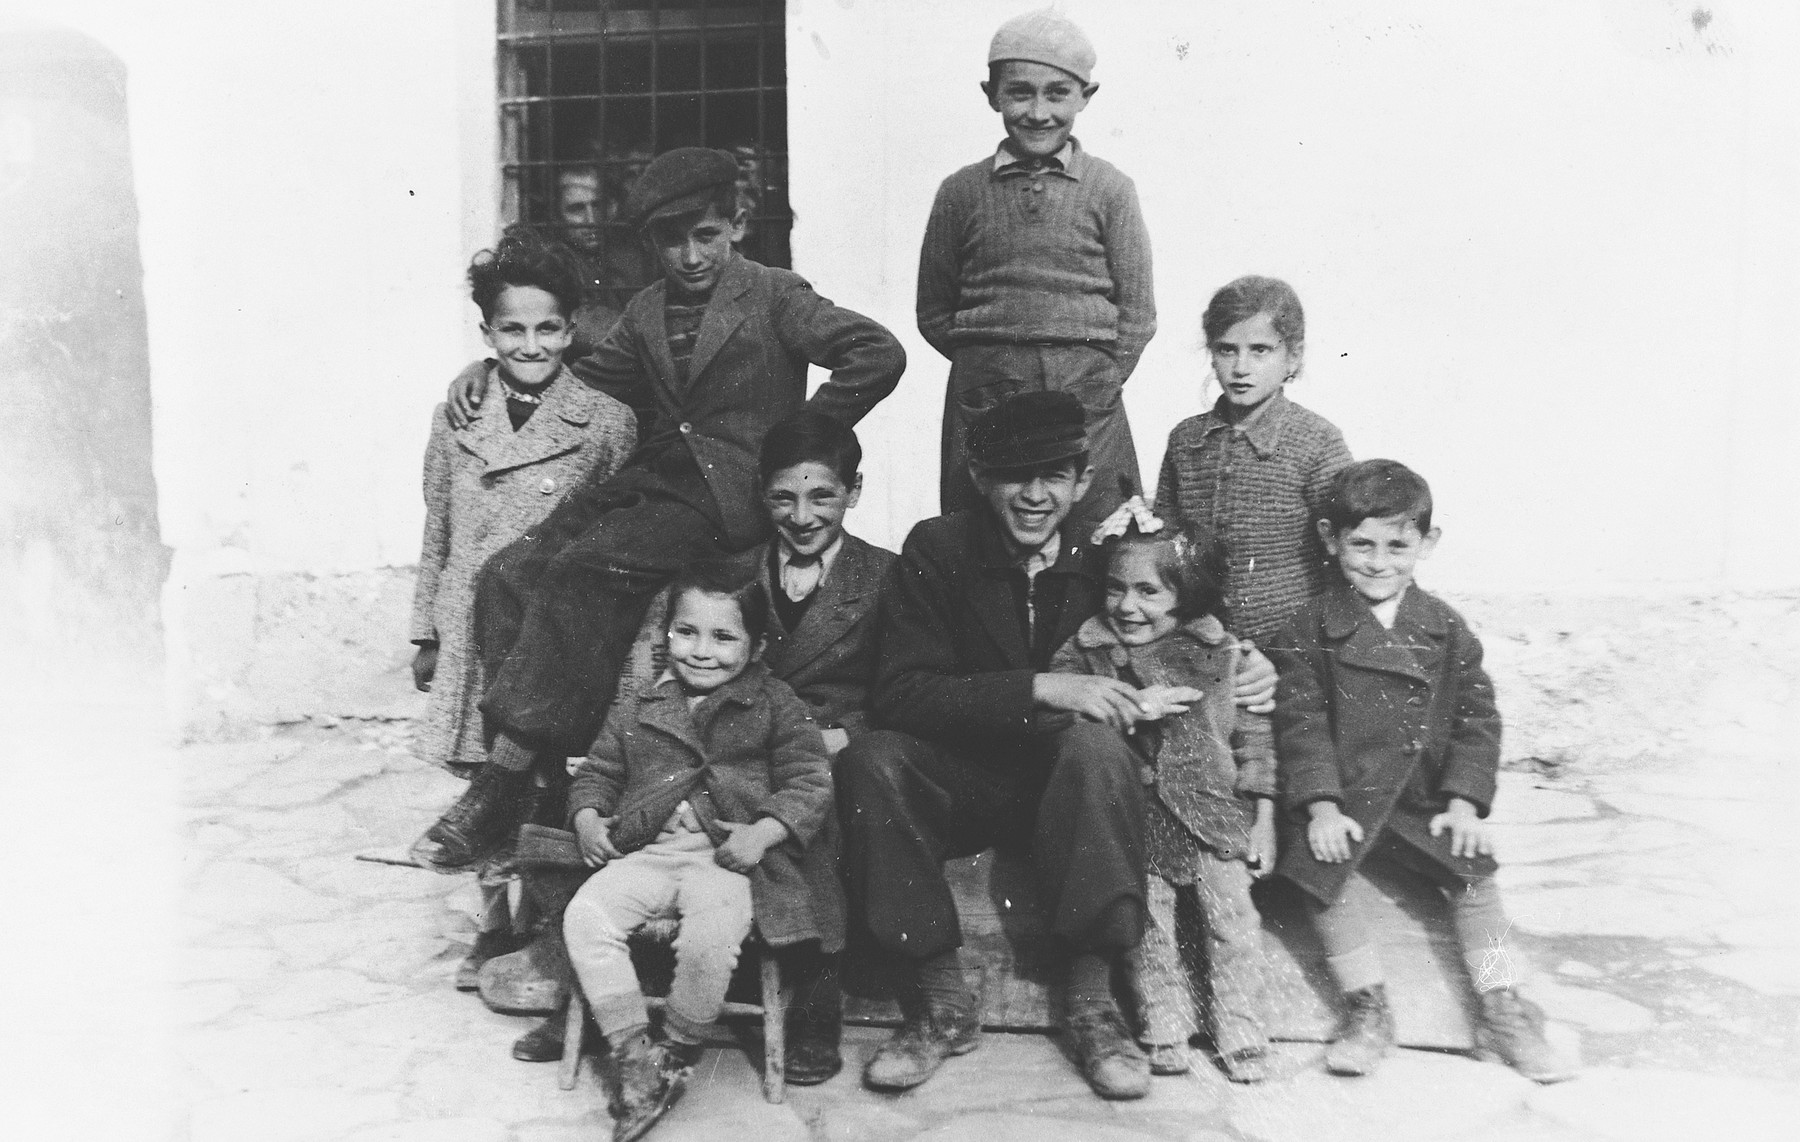 Group portrait of the children of Jewish refugee families incarcerated in the Pristina prison.    Pictured clockwise from the upper left are: Jasa Altarac, Nidja Konforti, Michael Konforti, unknown, Gavra Mandil, unknown, Ralle Jakovljevic, Marki Azriel, and Irena Mandil.